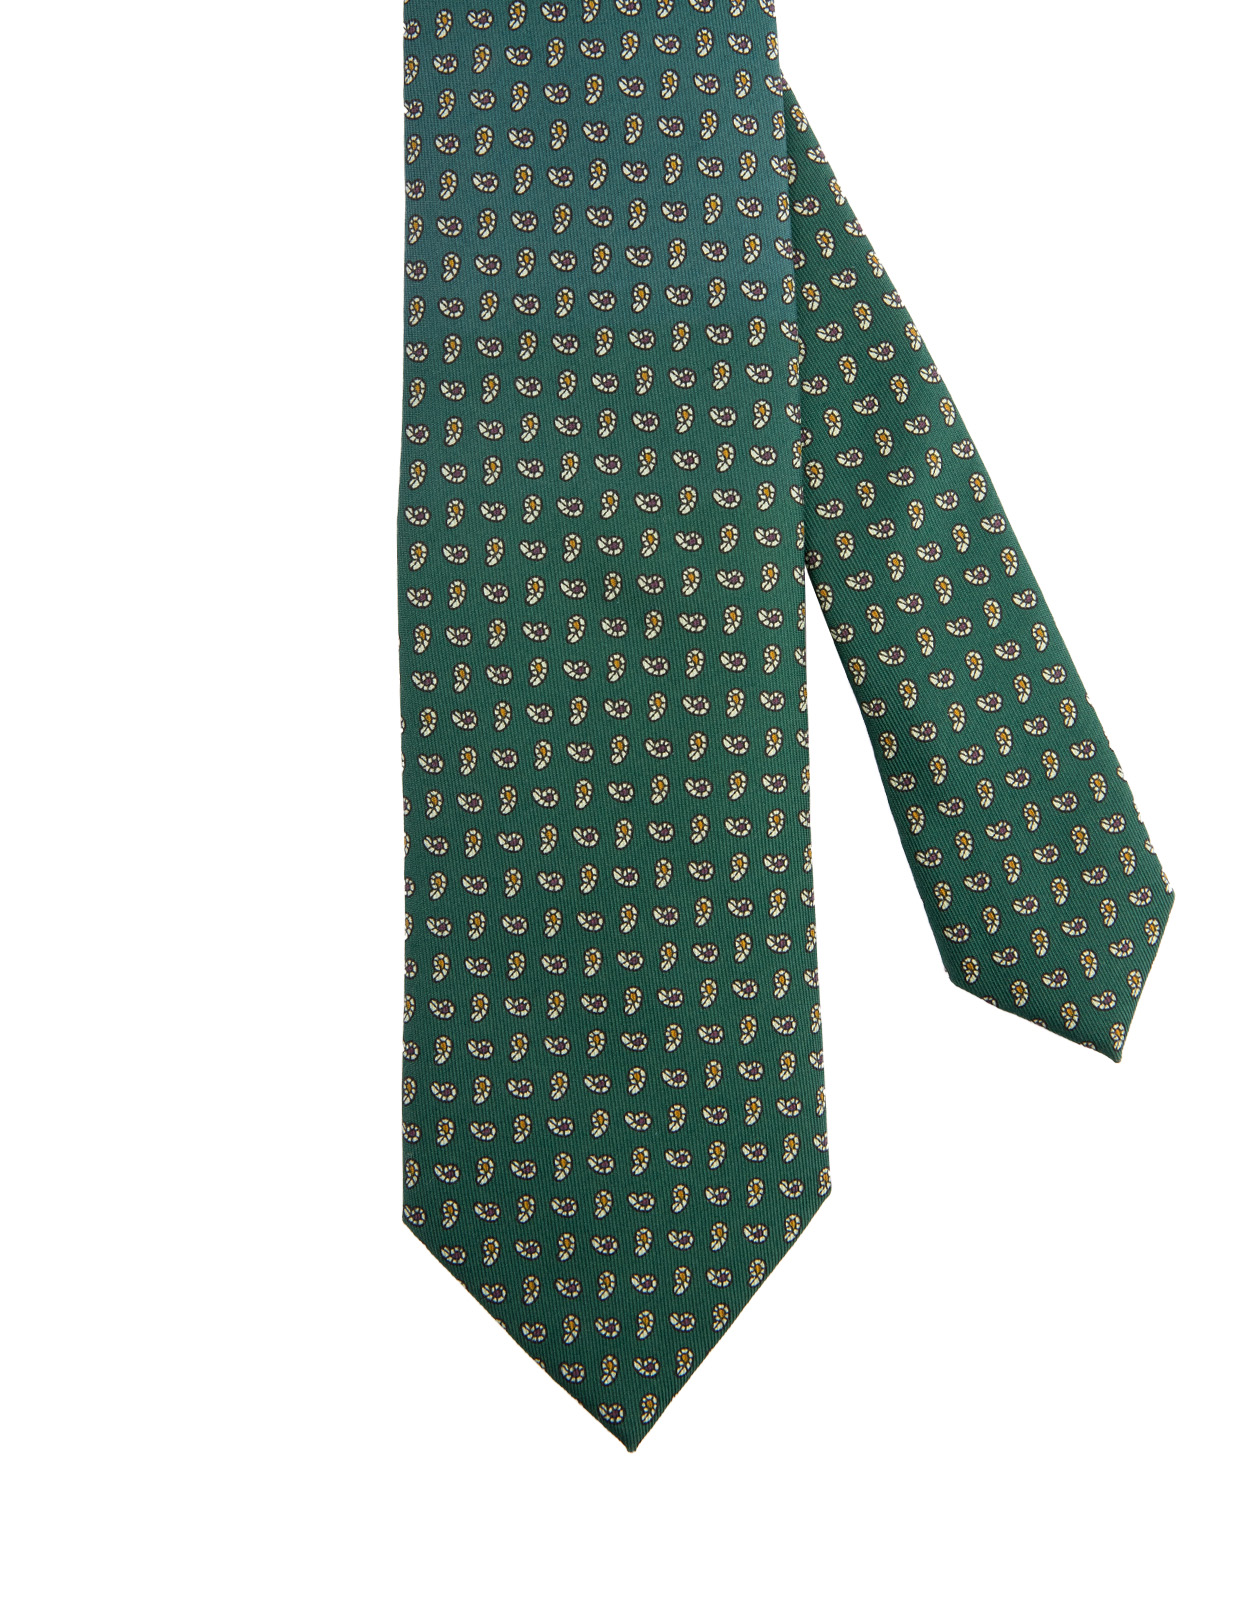 Classic Patterned Handmade Silk Tie Green